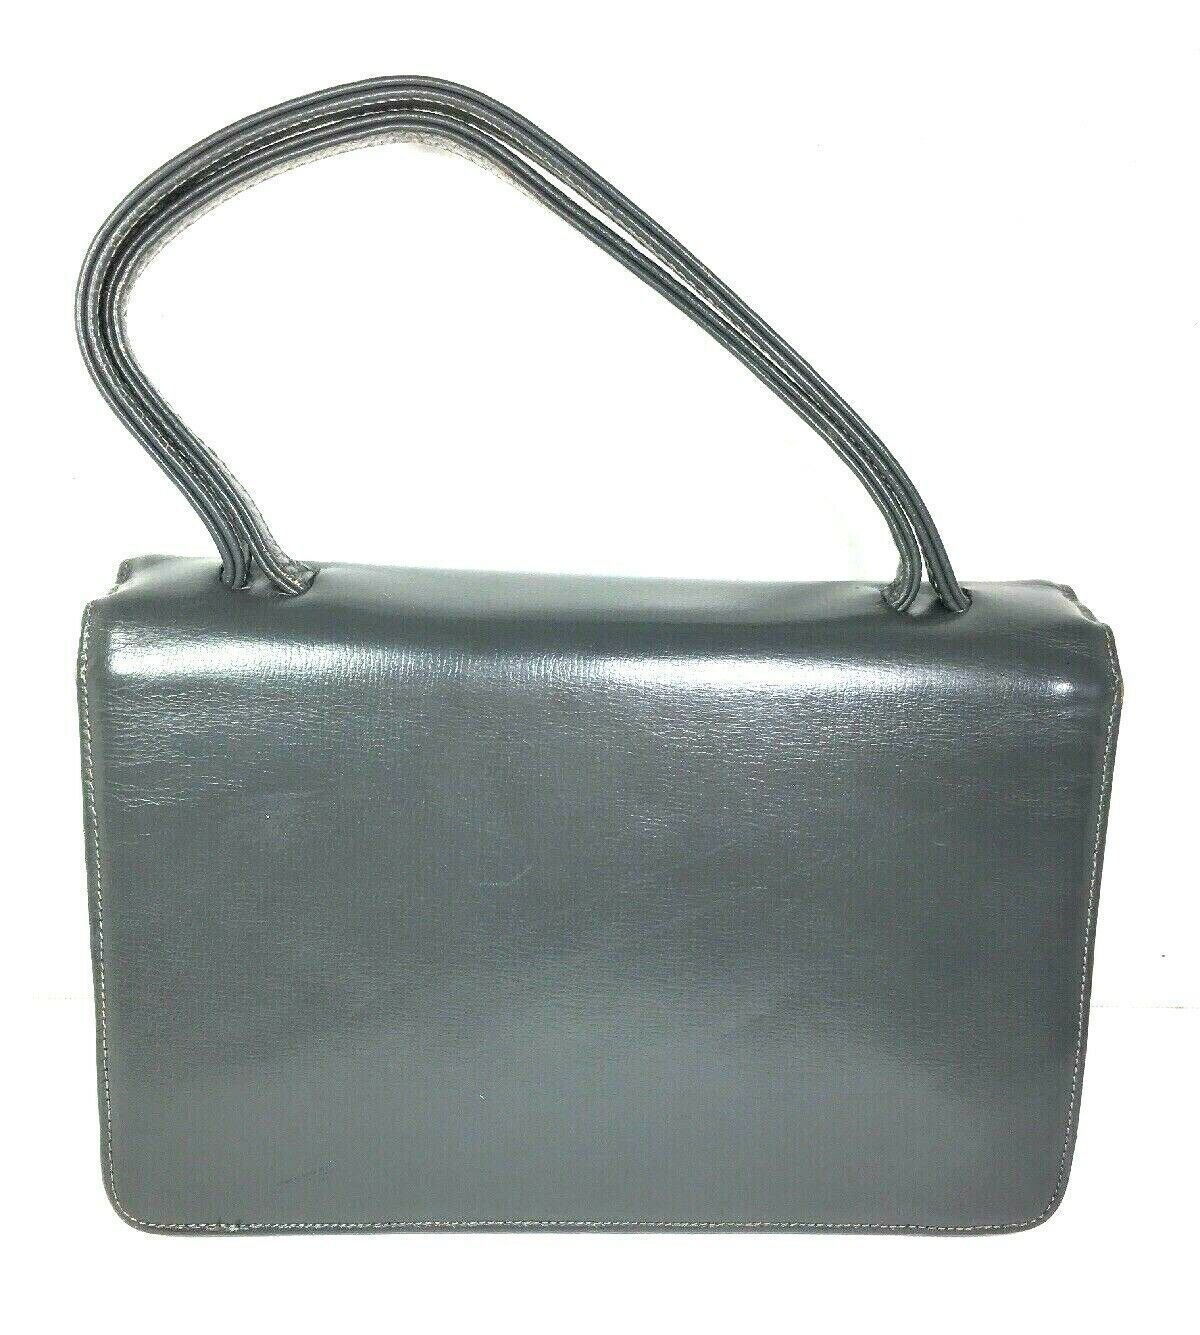 Block True Vintage Small Petite Gray Faux Leather Handbag